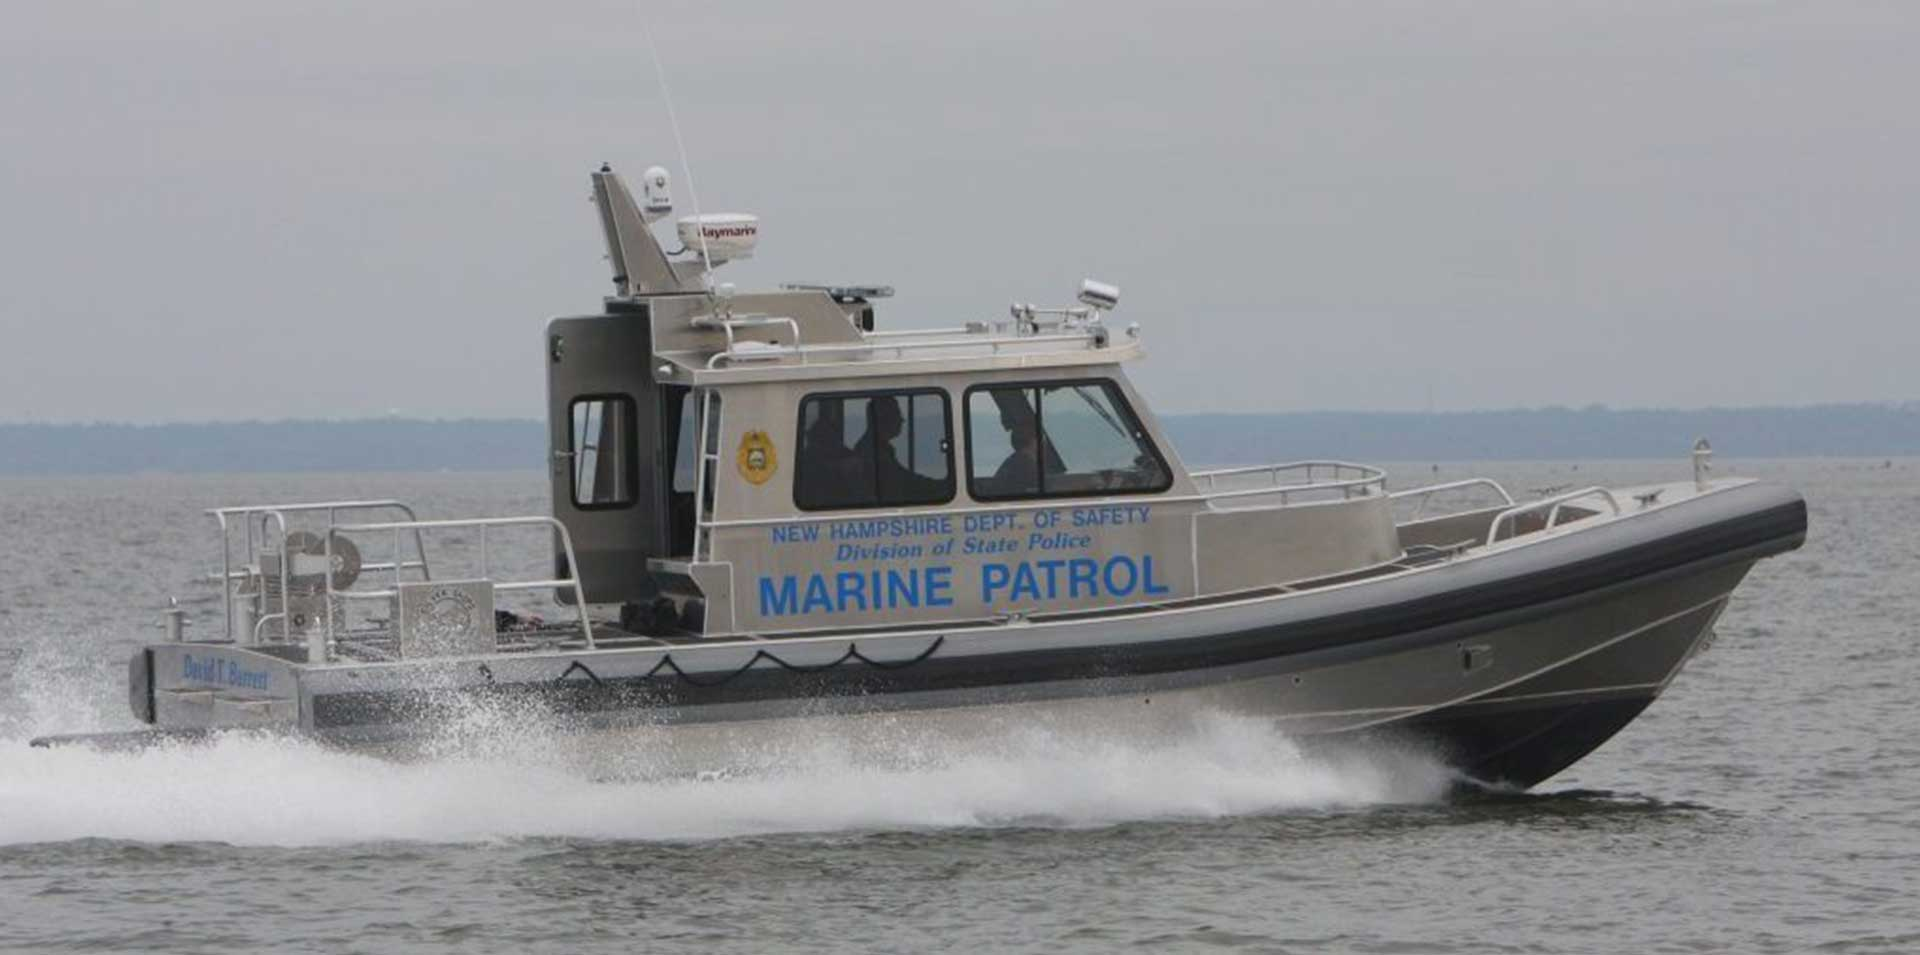 Silver Ships law enforcement marine patrol boat on ocean